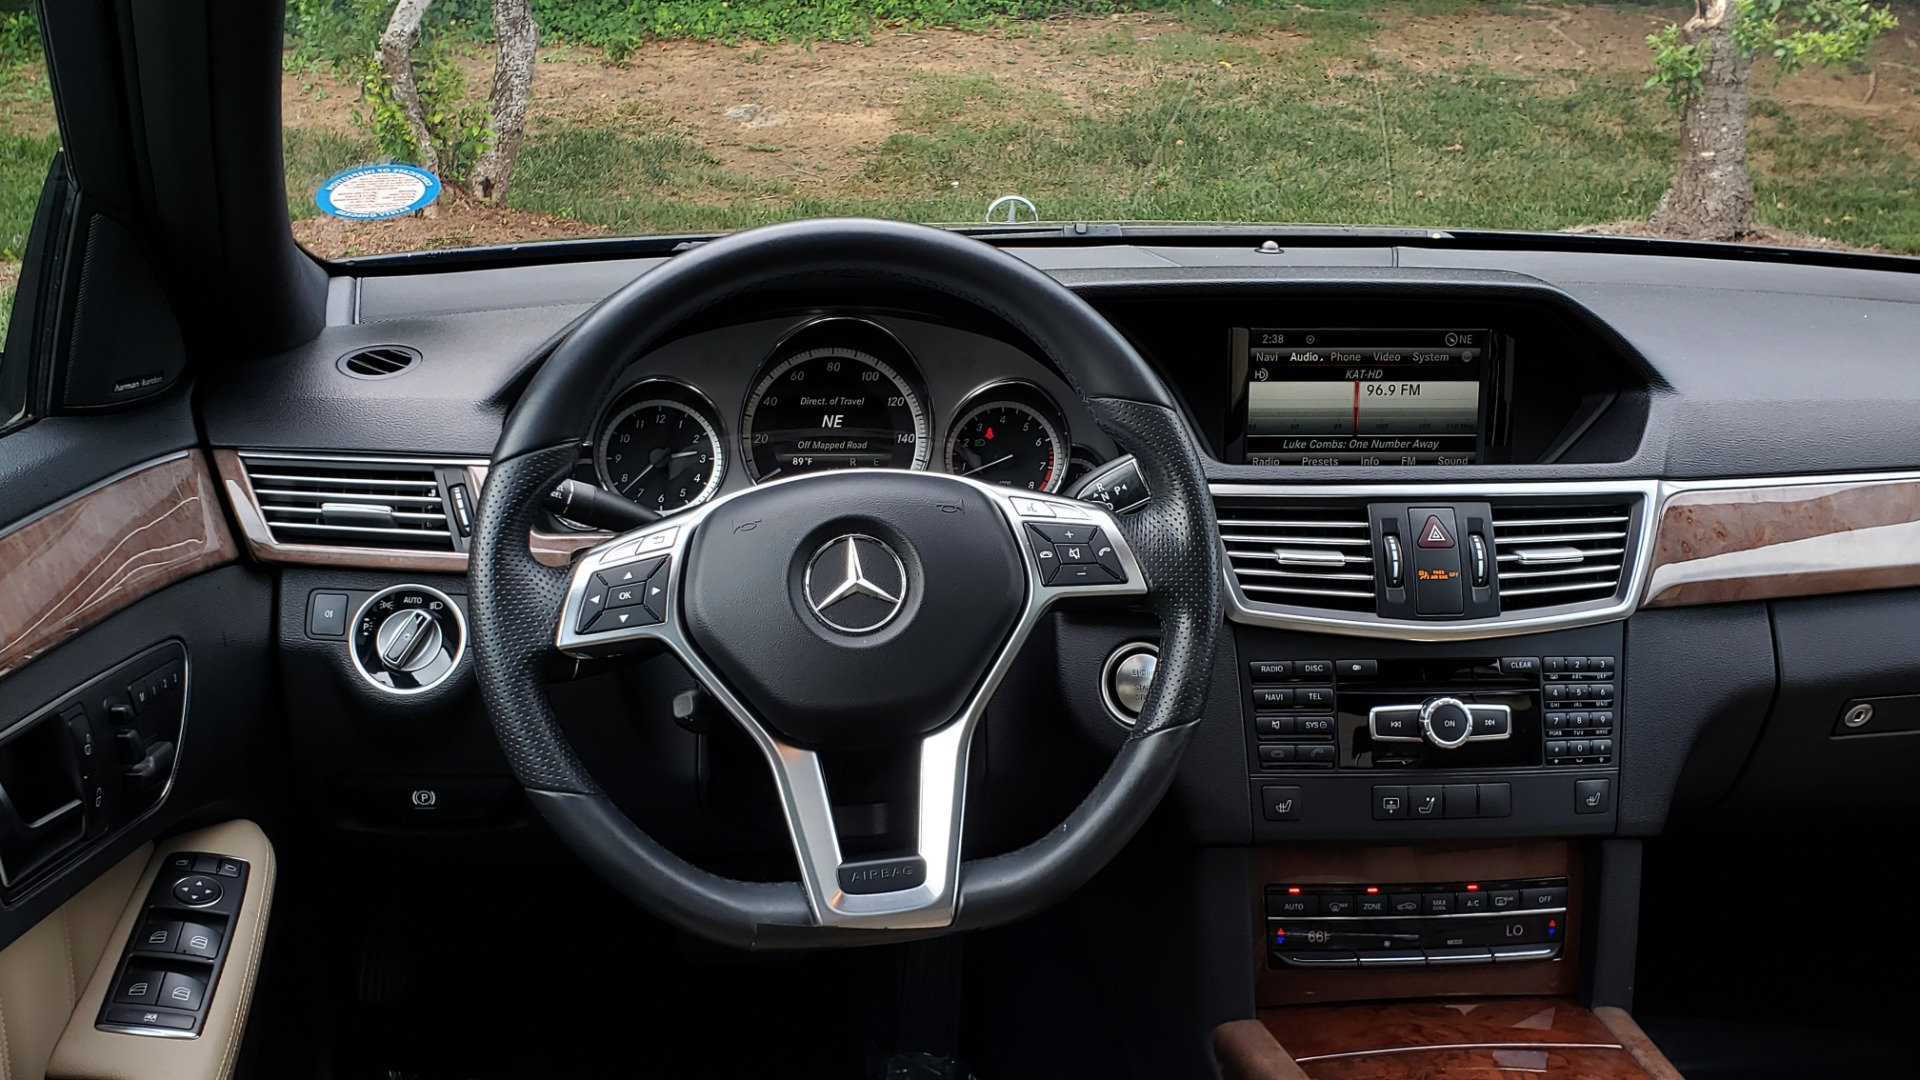 Used 2013 Mercedes-Benz E-CLASS E 350 SPORT / PREM PKG / NAV / SUNROOF / LANE TRACKING / BSA for sale $17,995 at Formula Imports in Charlotte NC 28227 38